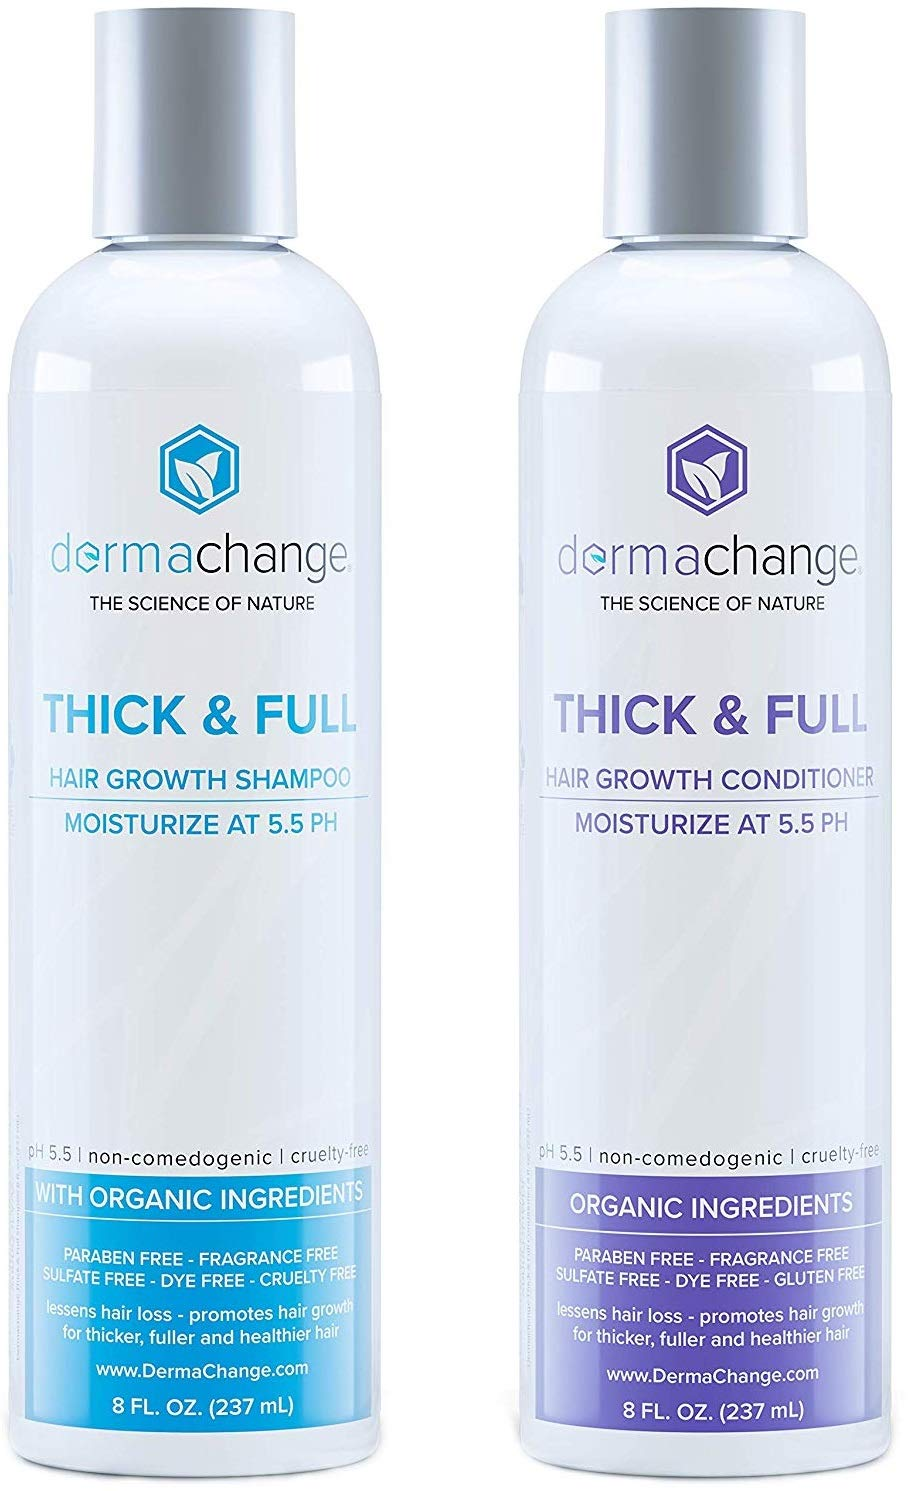 Organic Vegan Hair Growth Shampoo and Conditioner Set - Natural Hair Regrowth with Vitamins - Hair Loss & Thinning Products - Curly or Color Treated Hair - For Men and Women - Sulfate Free (8oz) by DermaChange